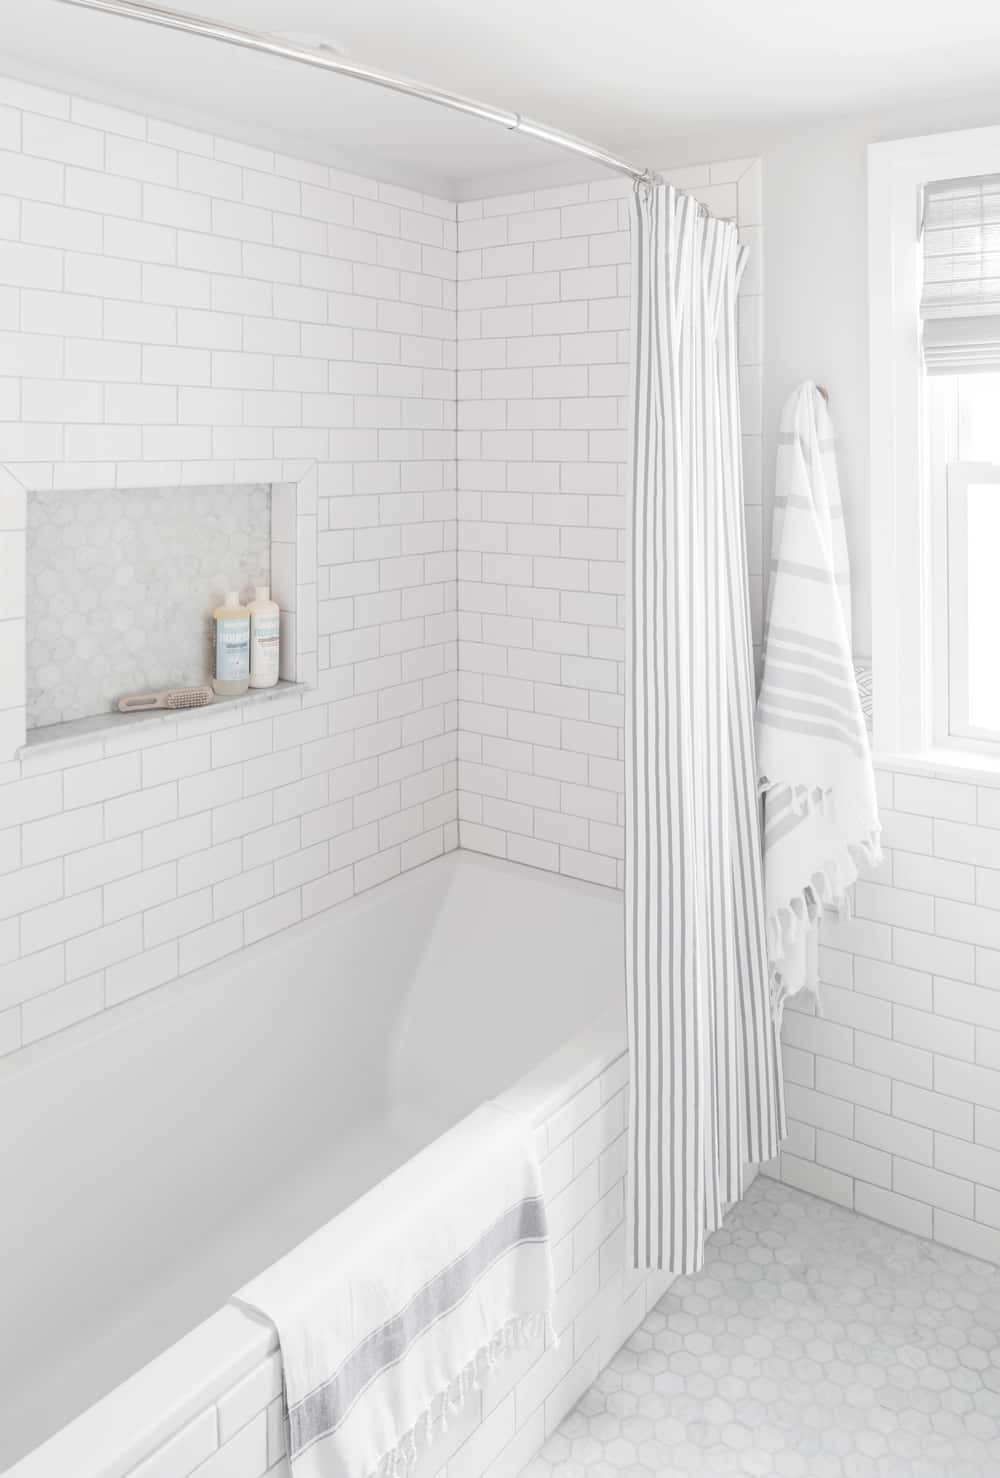 Small bathroom renovation white subway tile centered by design centered by design - Pictures of small bathrooms ...